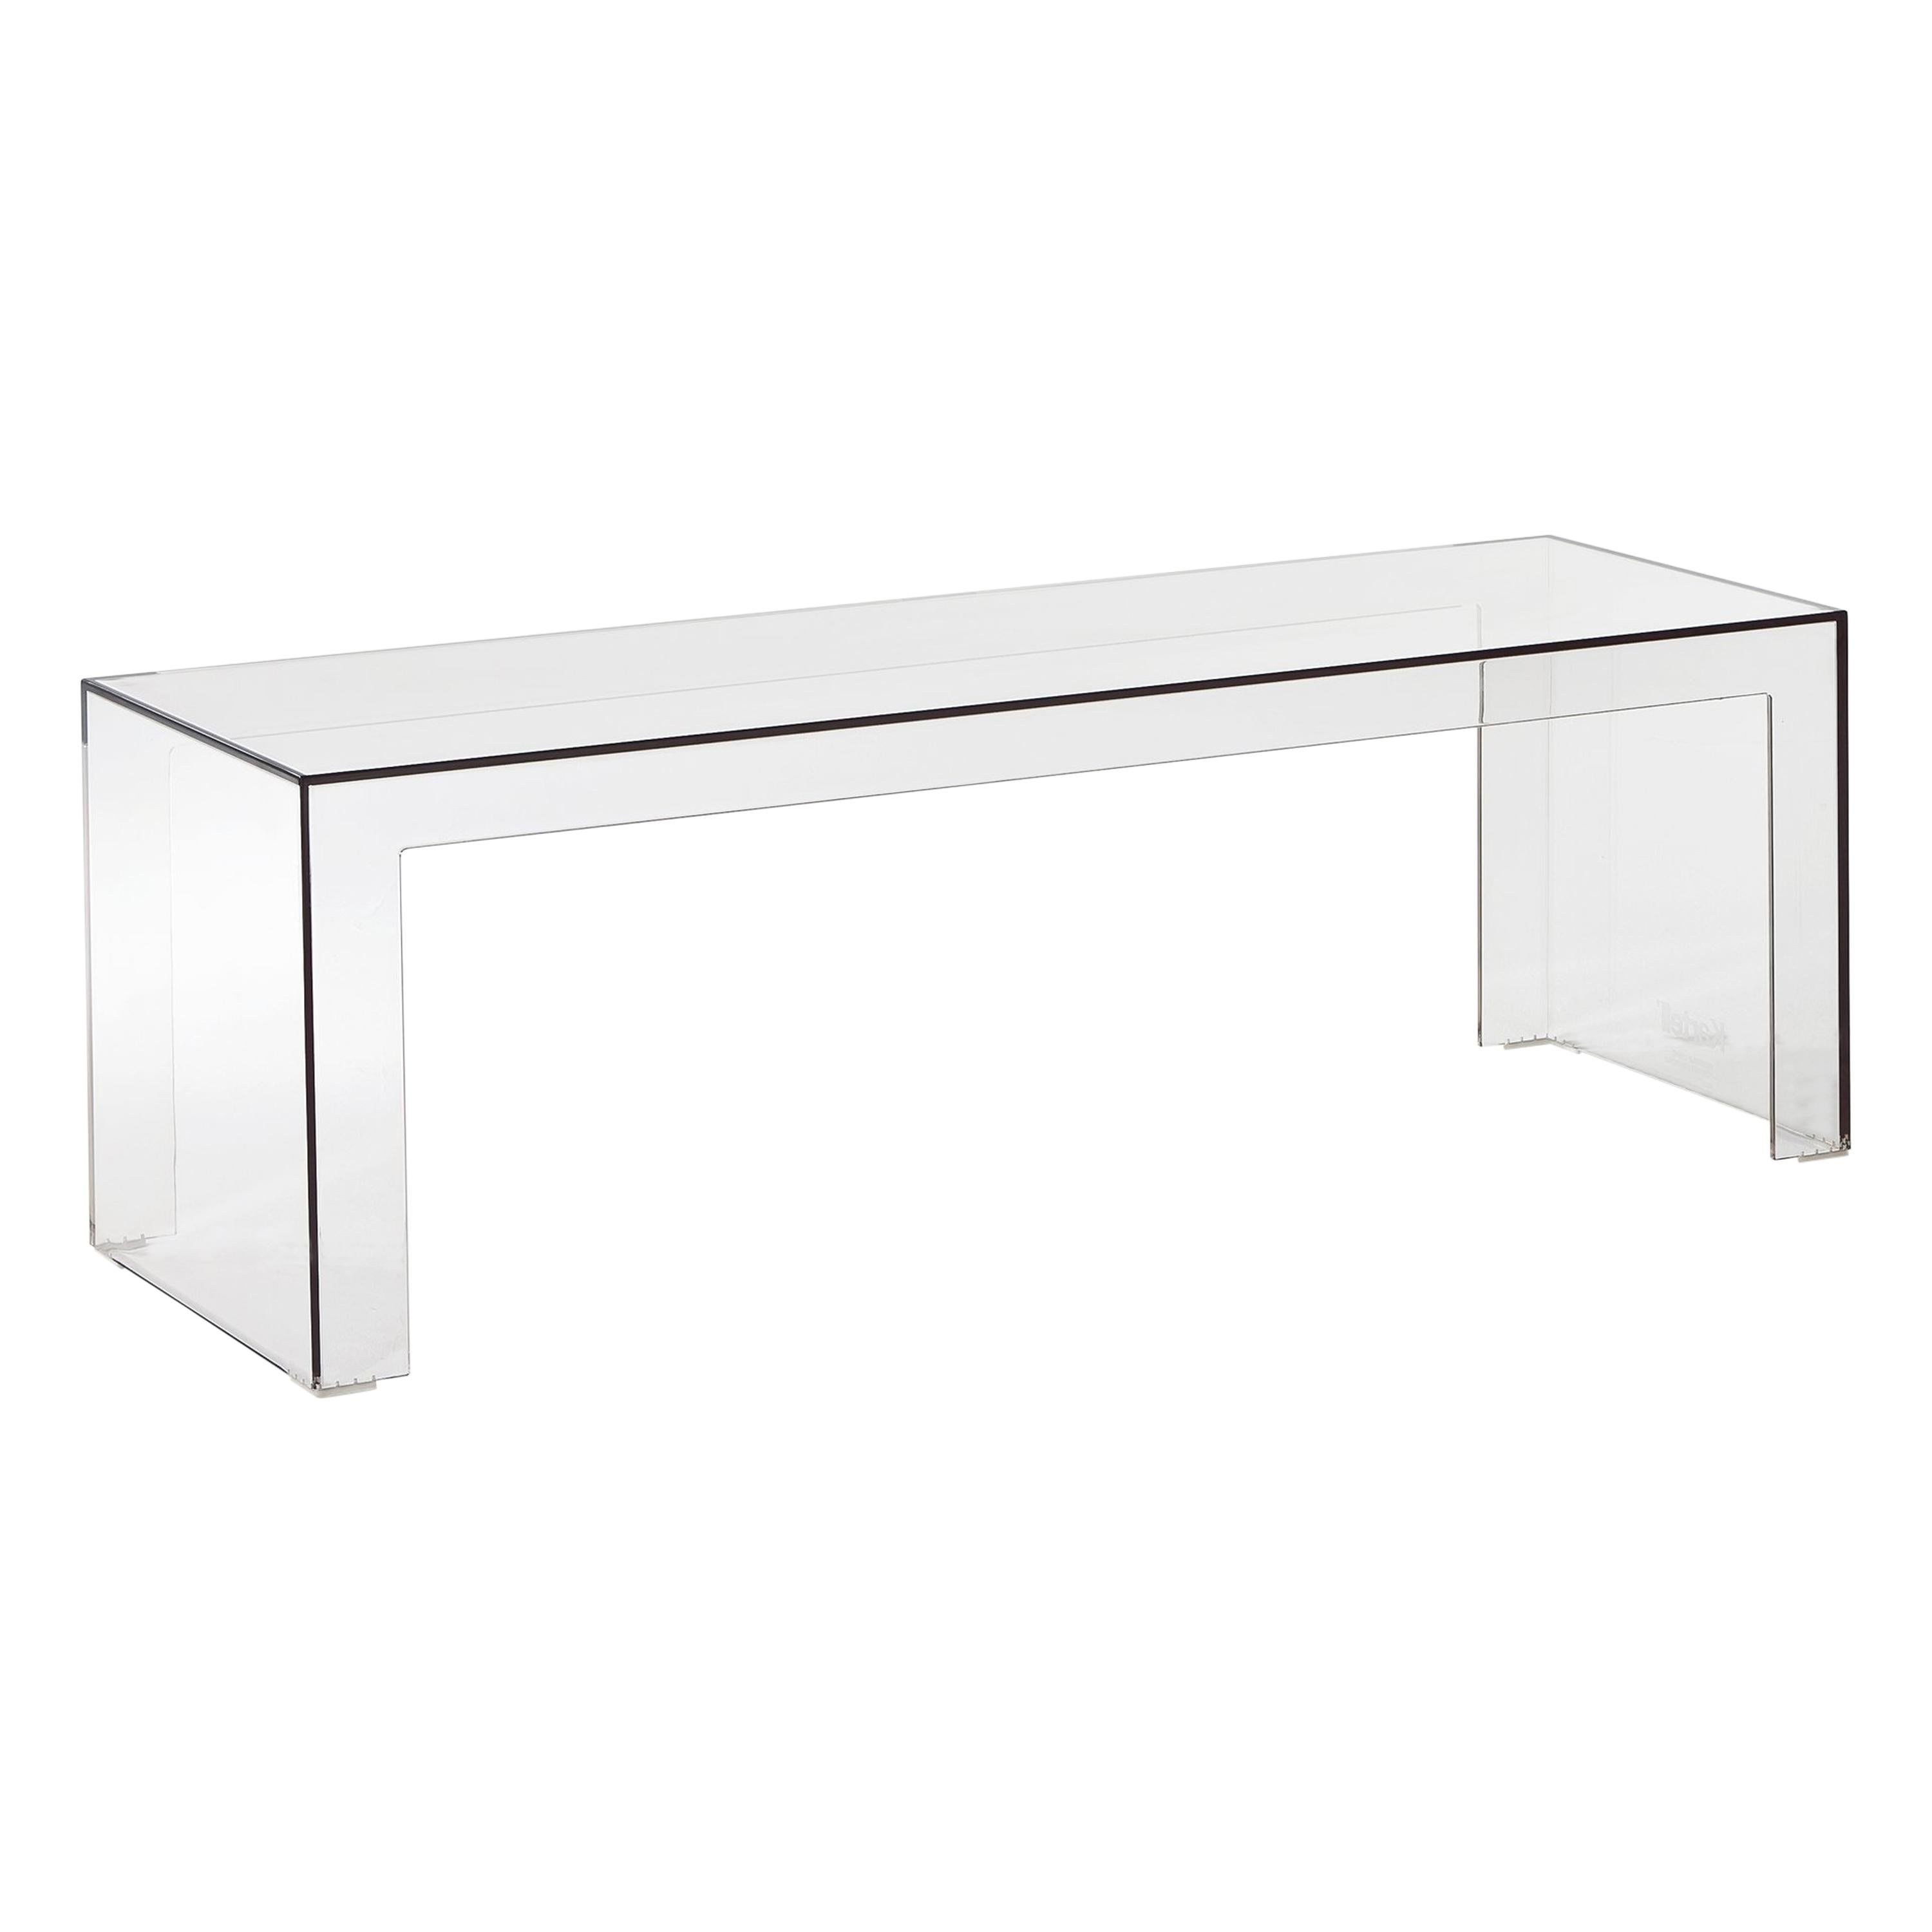 Kartell Invisible Low Rectangular Table in Crystal by Tokujin Yoshioka